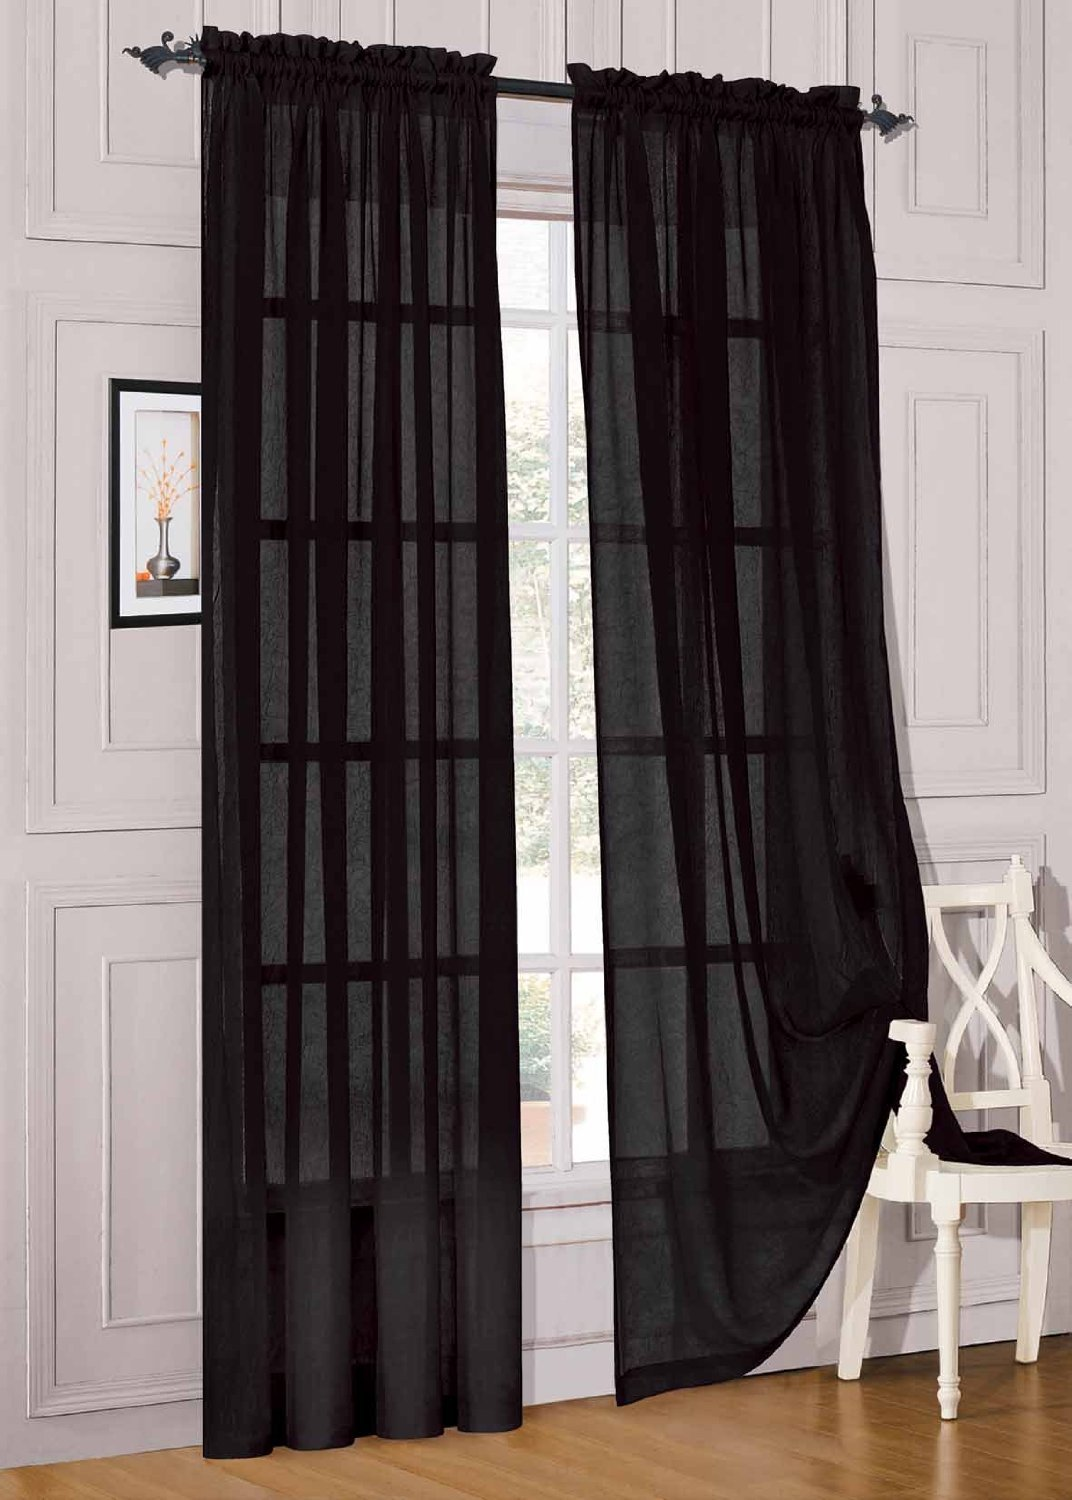 triplepinchpleat come with eight these pleat and triple lengths to h hang panel custdrape panels pleats in home drapes linen pinch houselinen ivory coc ready two pp colours drape house